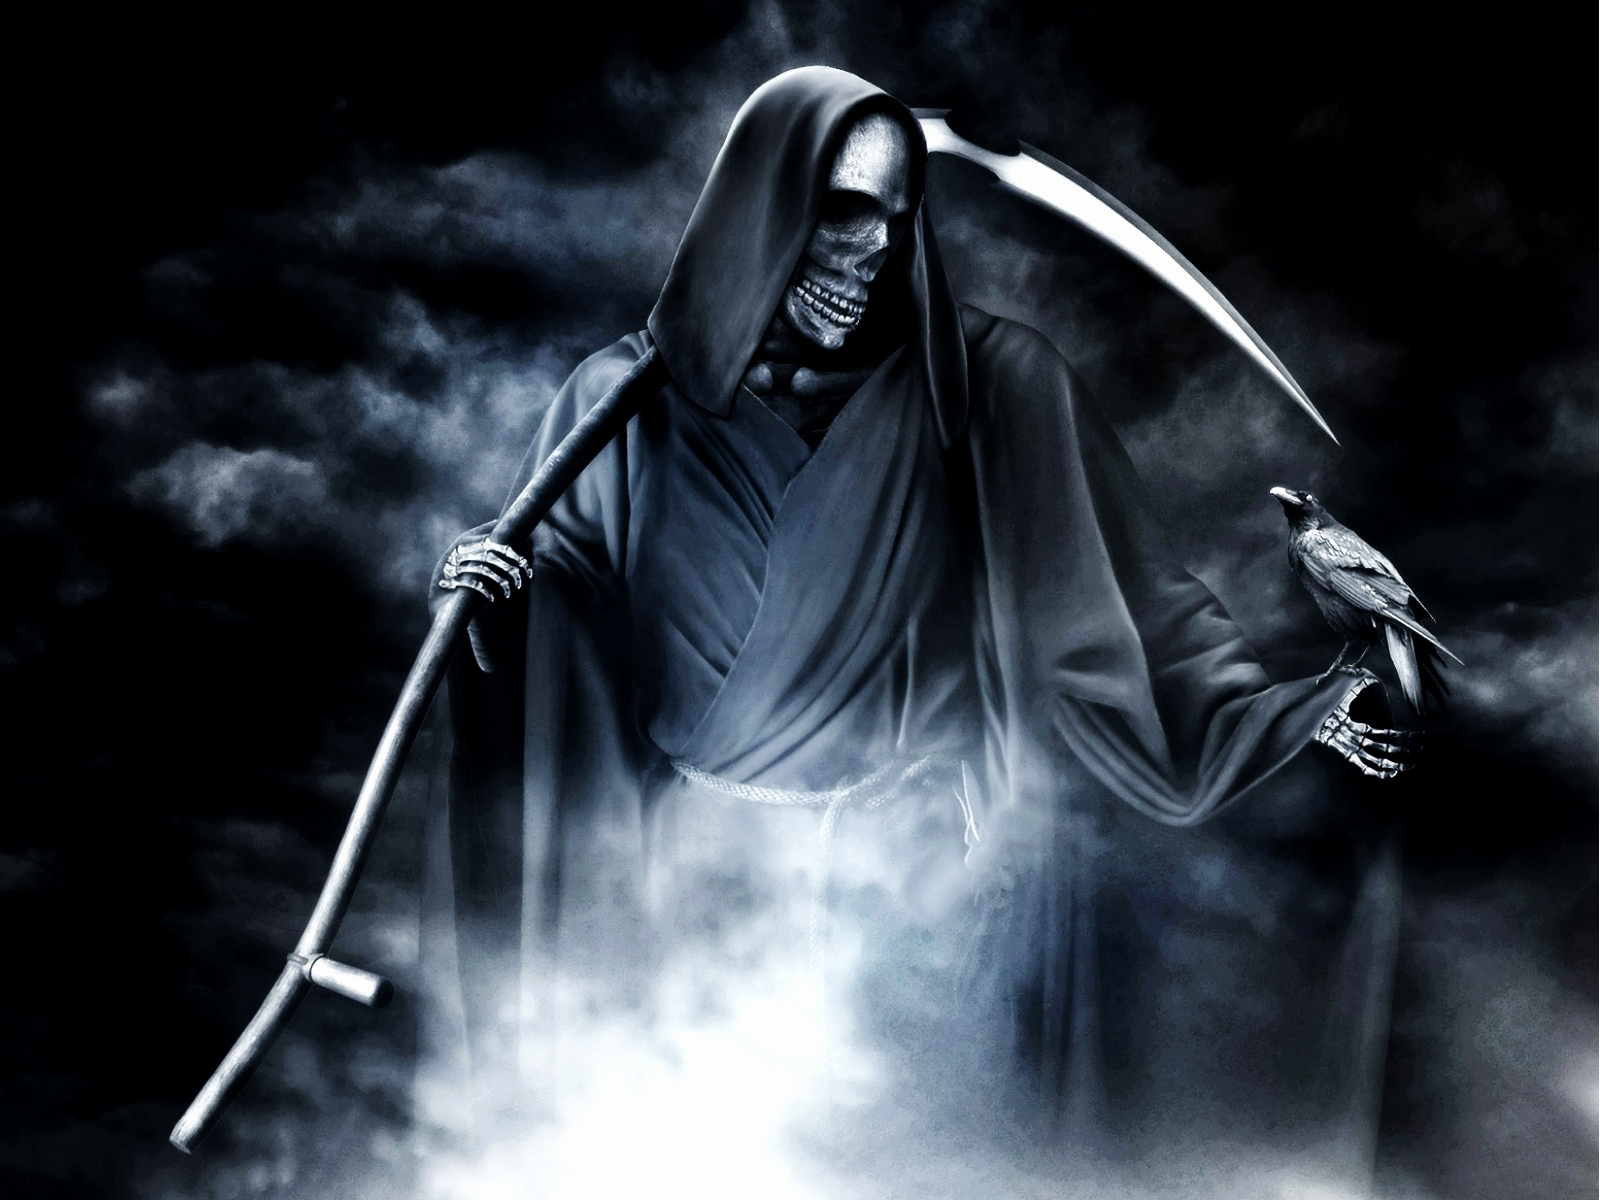 grim reaper wallpaper awesome and free grim reaper wallpaper hd